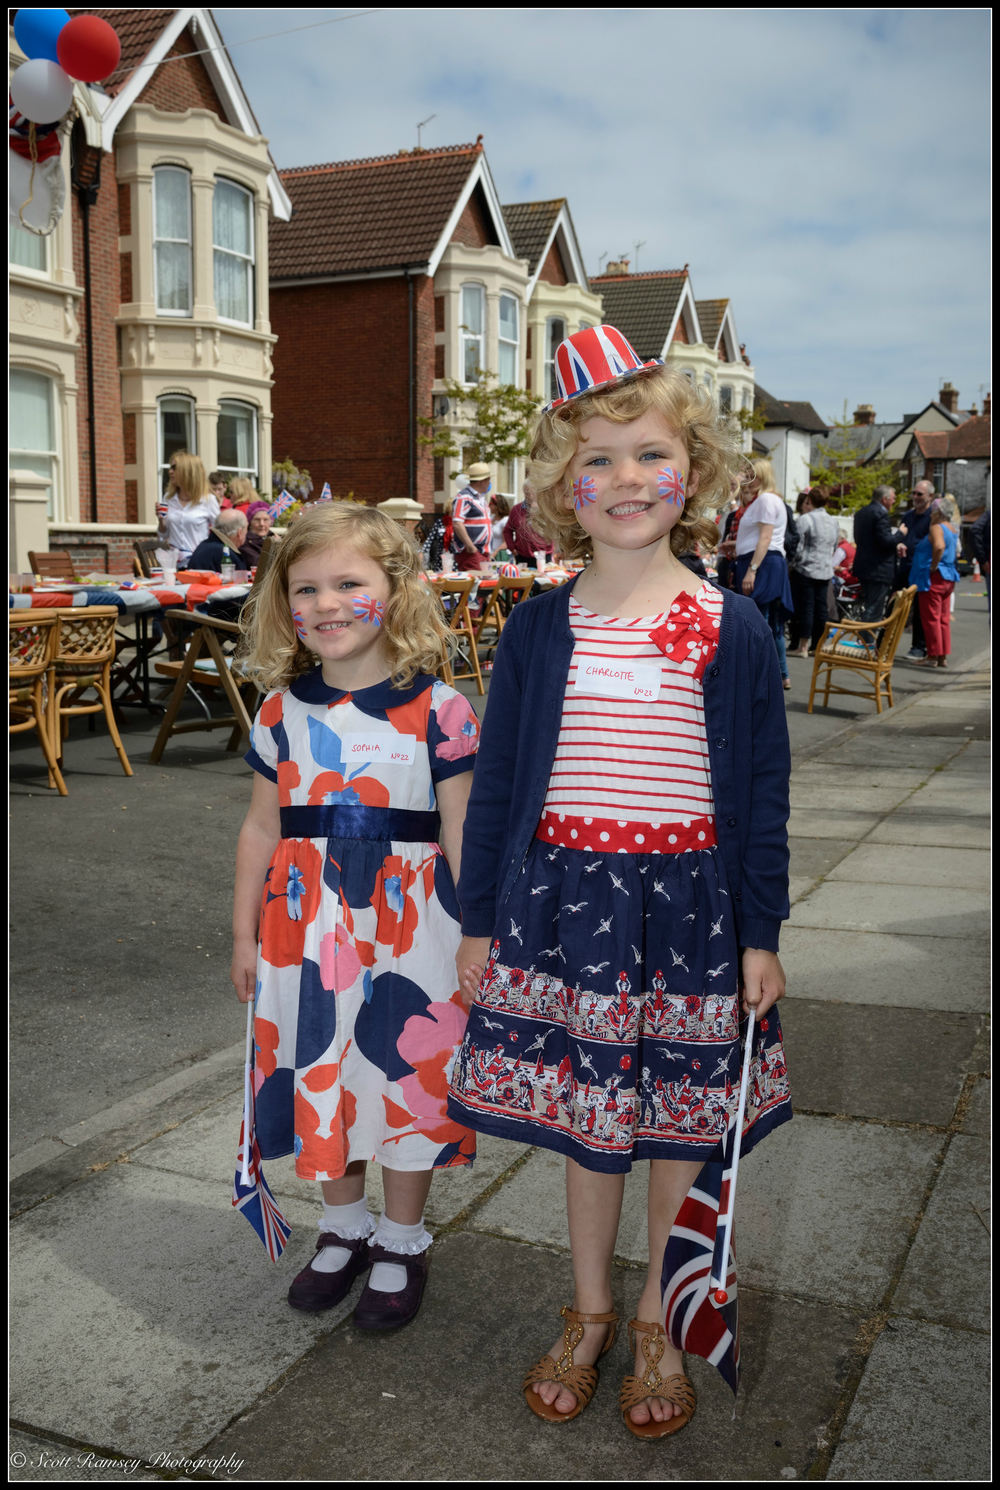 With painted faces, flags and wearing their party dresses two girls pose for a photo during the VE Day 70th anniversary street party in Southsea, Portsmouth, UK. © Scott Ramsey Photography.